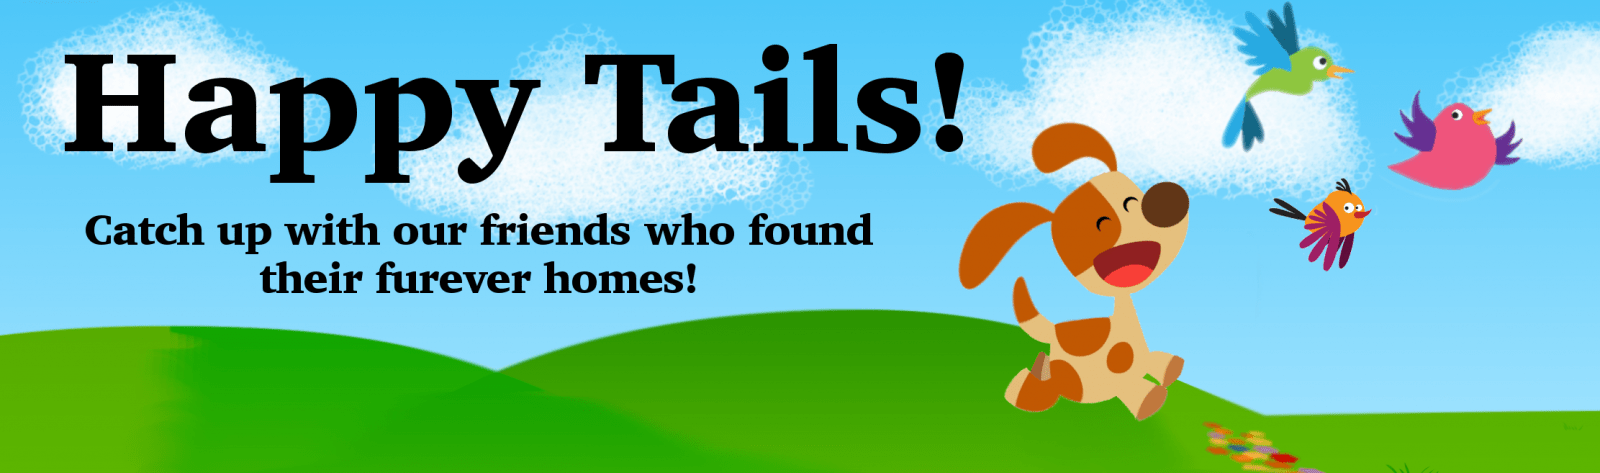 happy-tails-graphic-fullsize